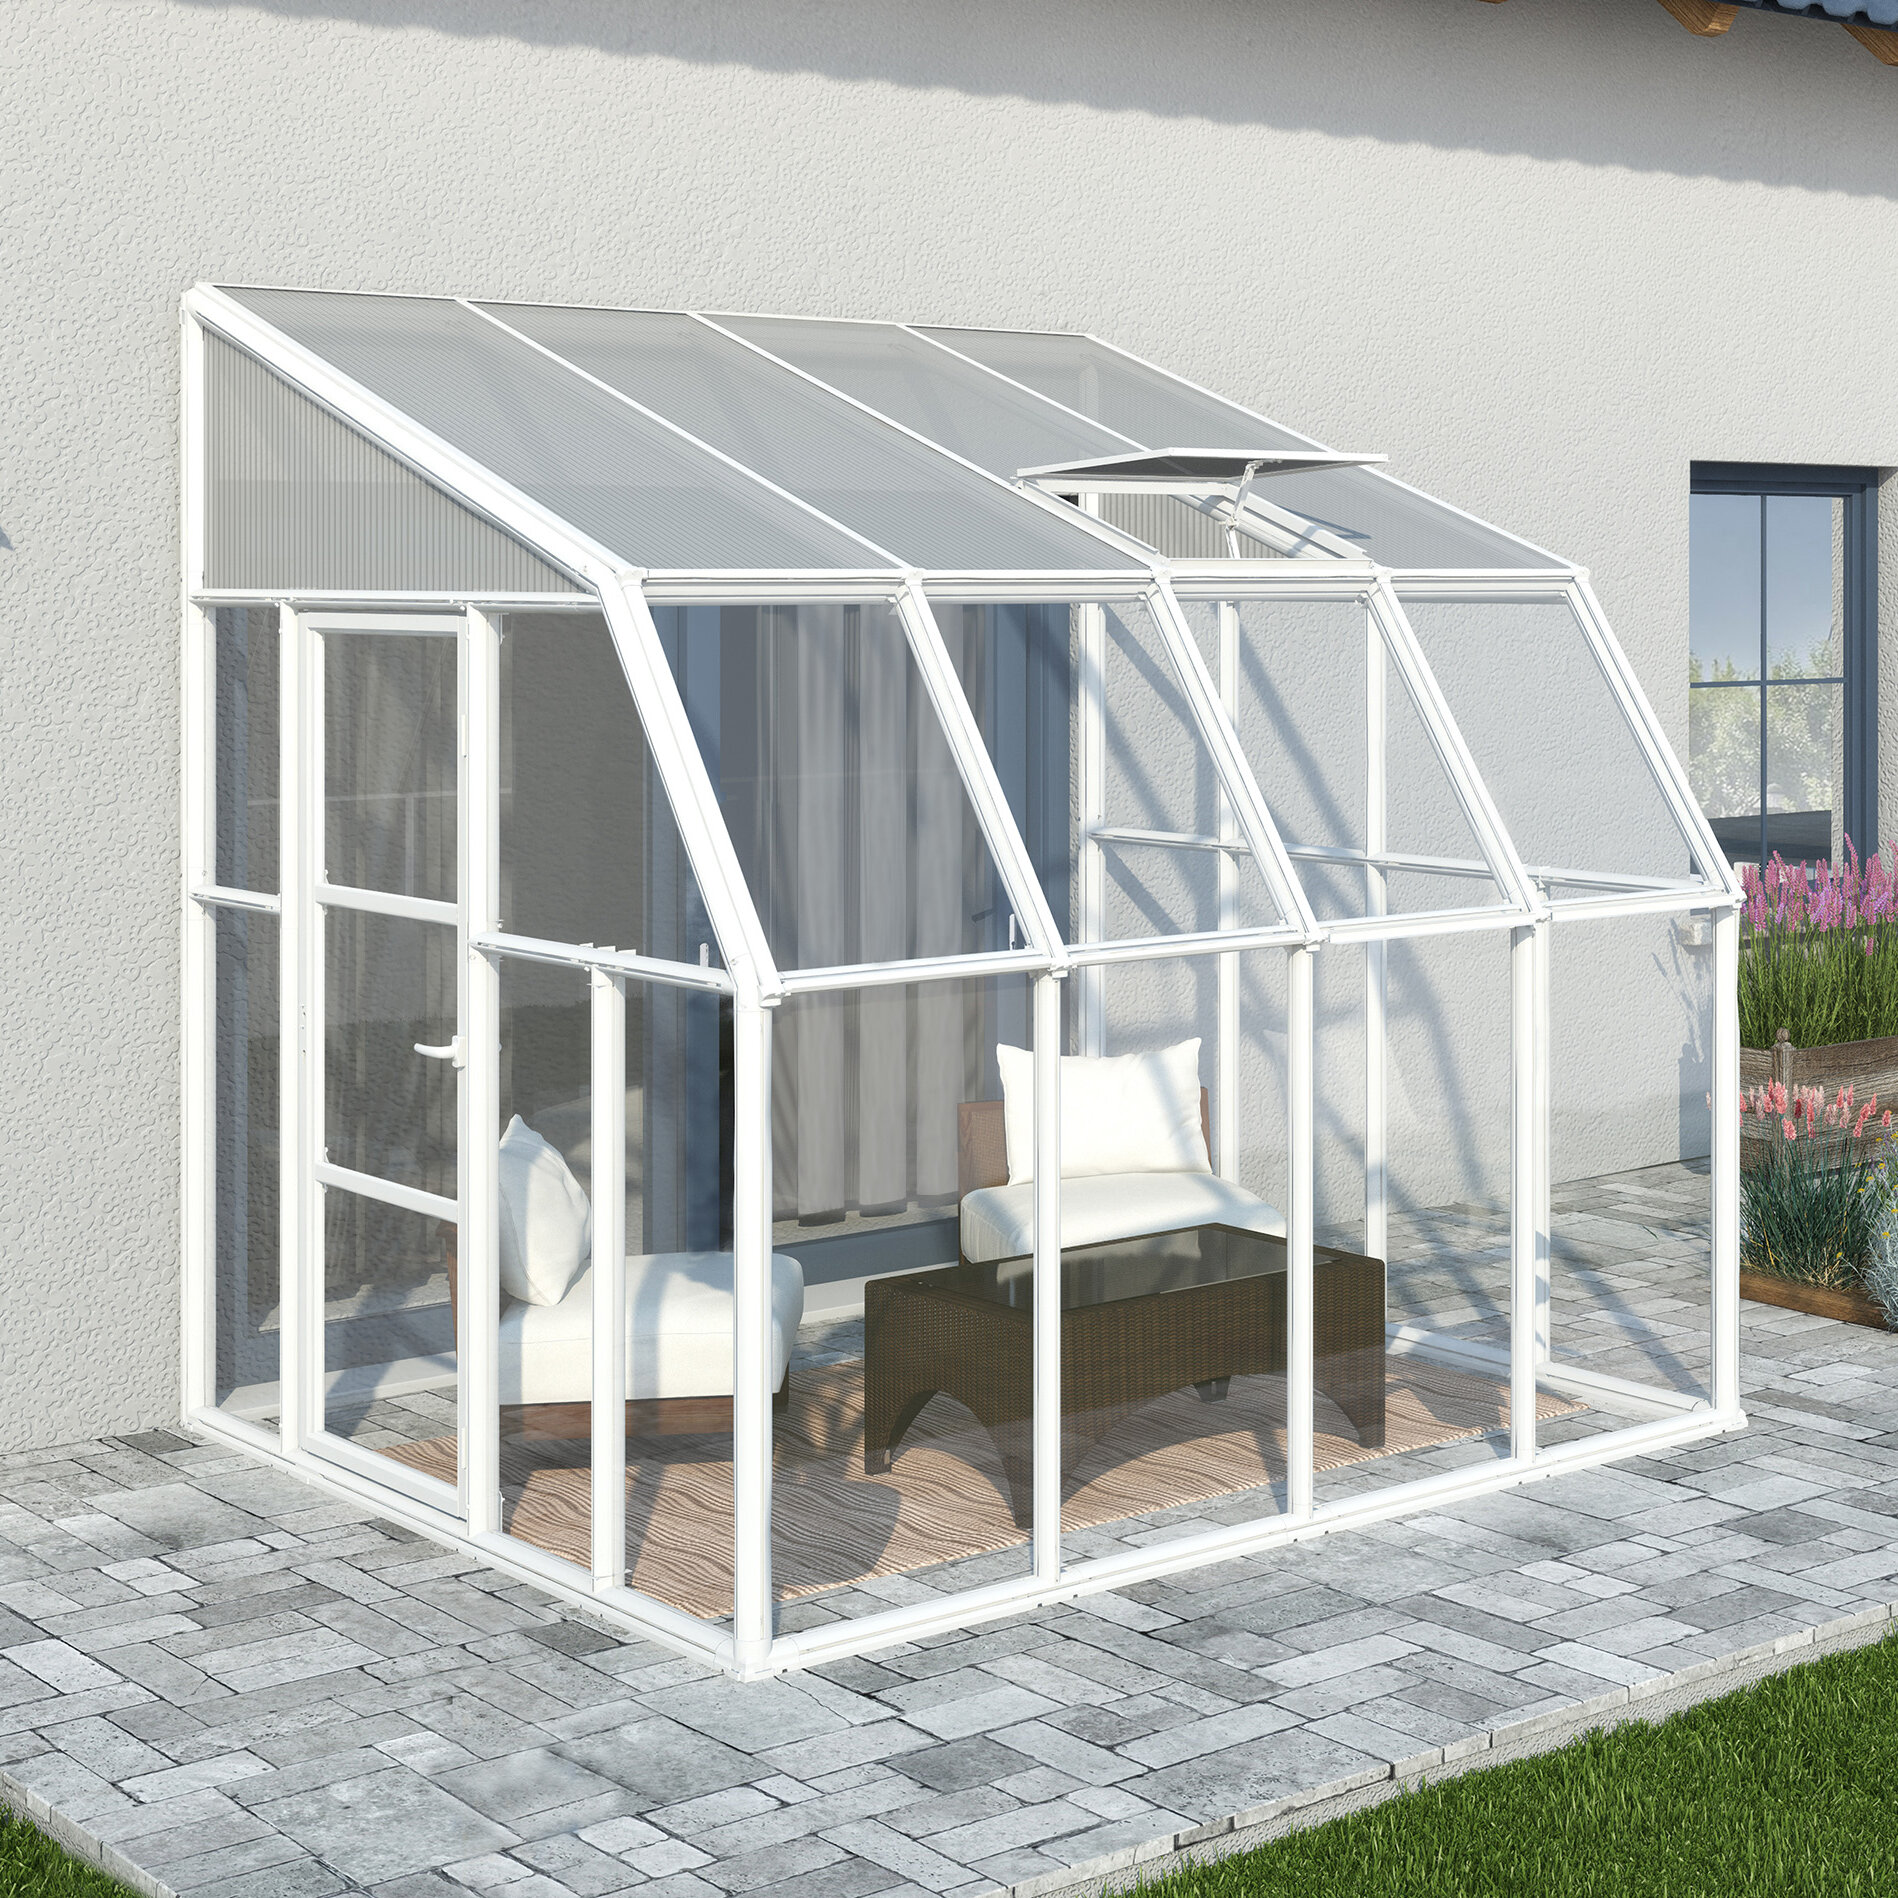 Rion Sunroom 2 Vinyl Wall Mounted Patio Gazebo & Reviews | Wayfair